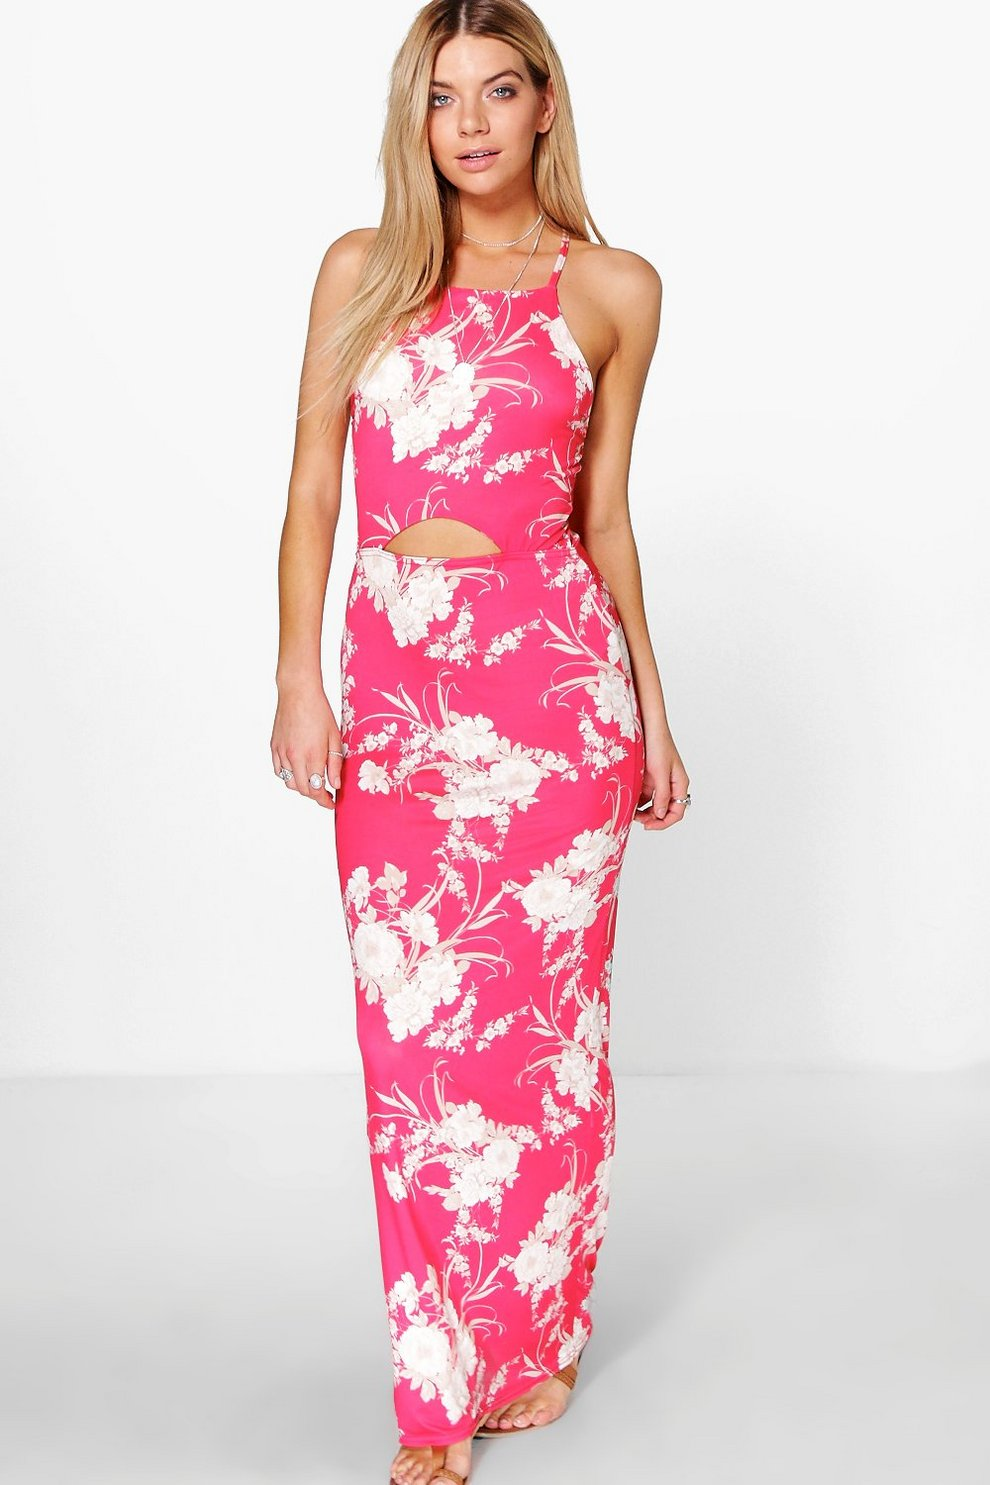 aab860d94d1 Trixie Strappy Oriental Cut Out Maxi Dress